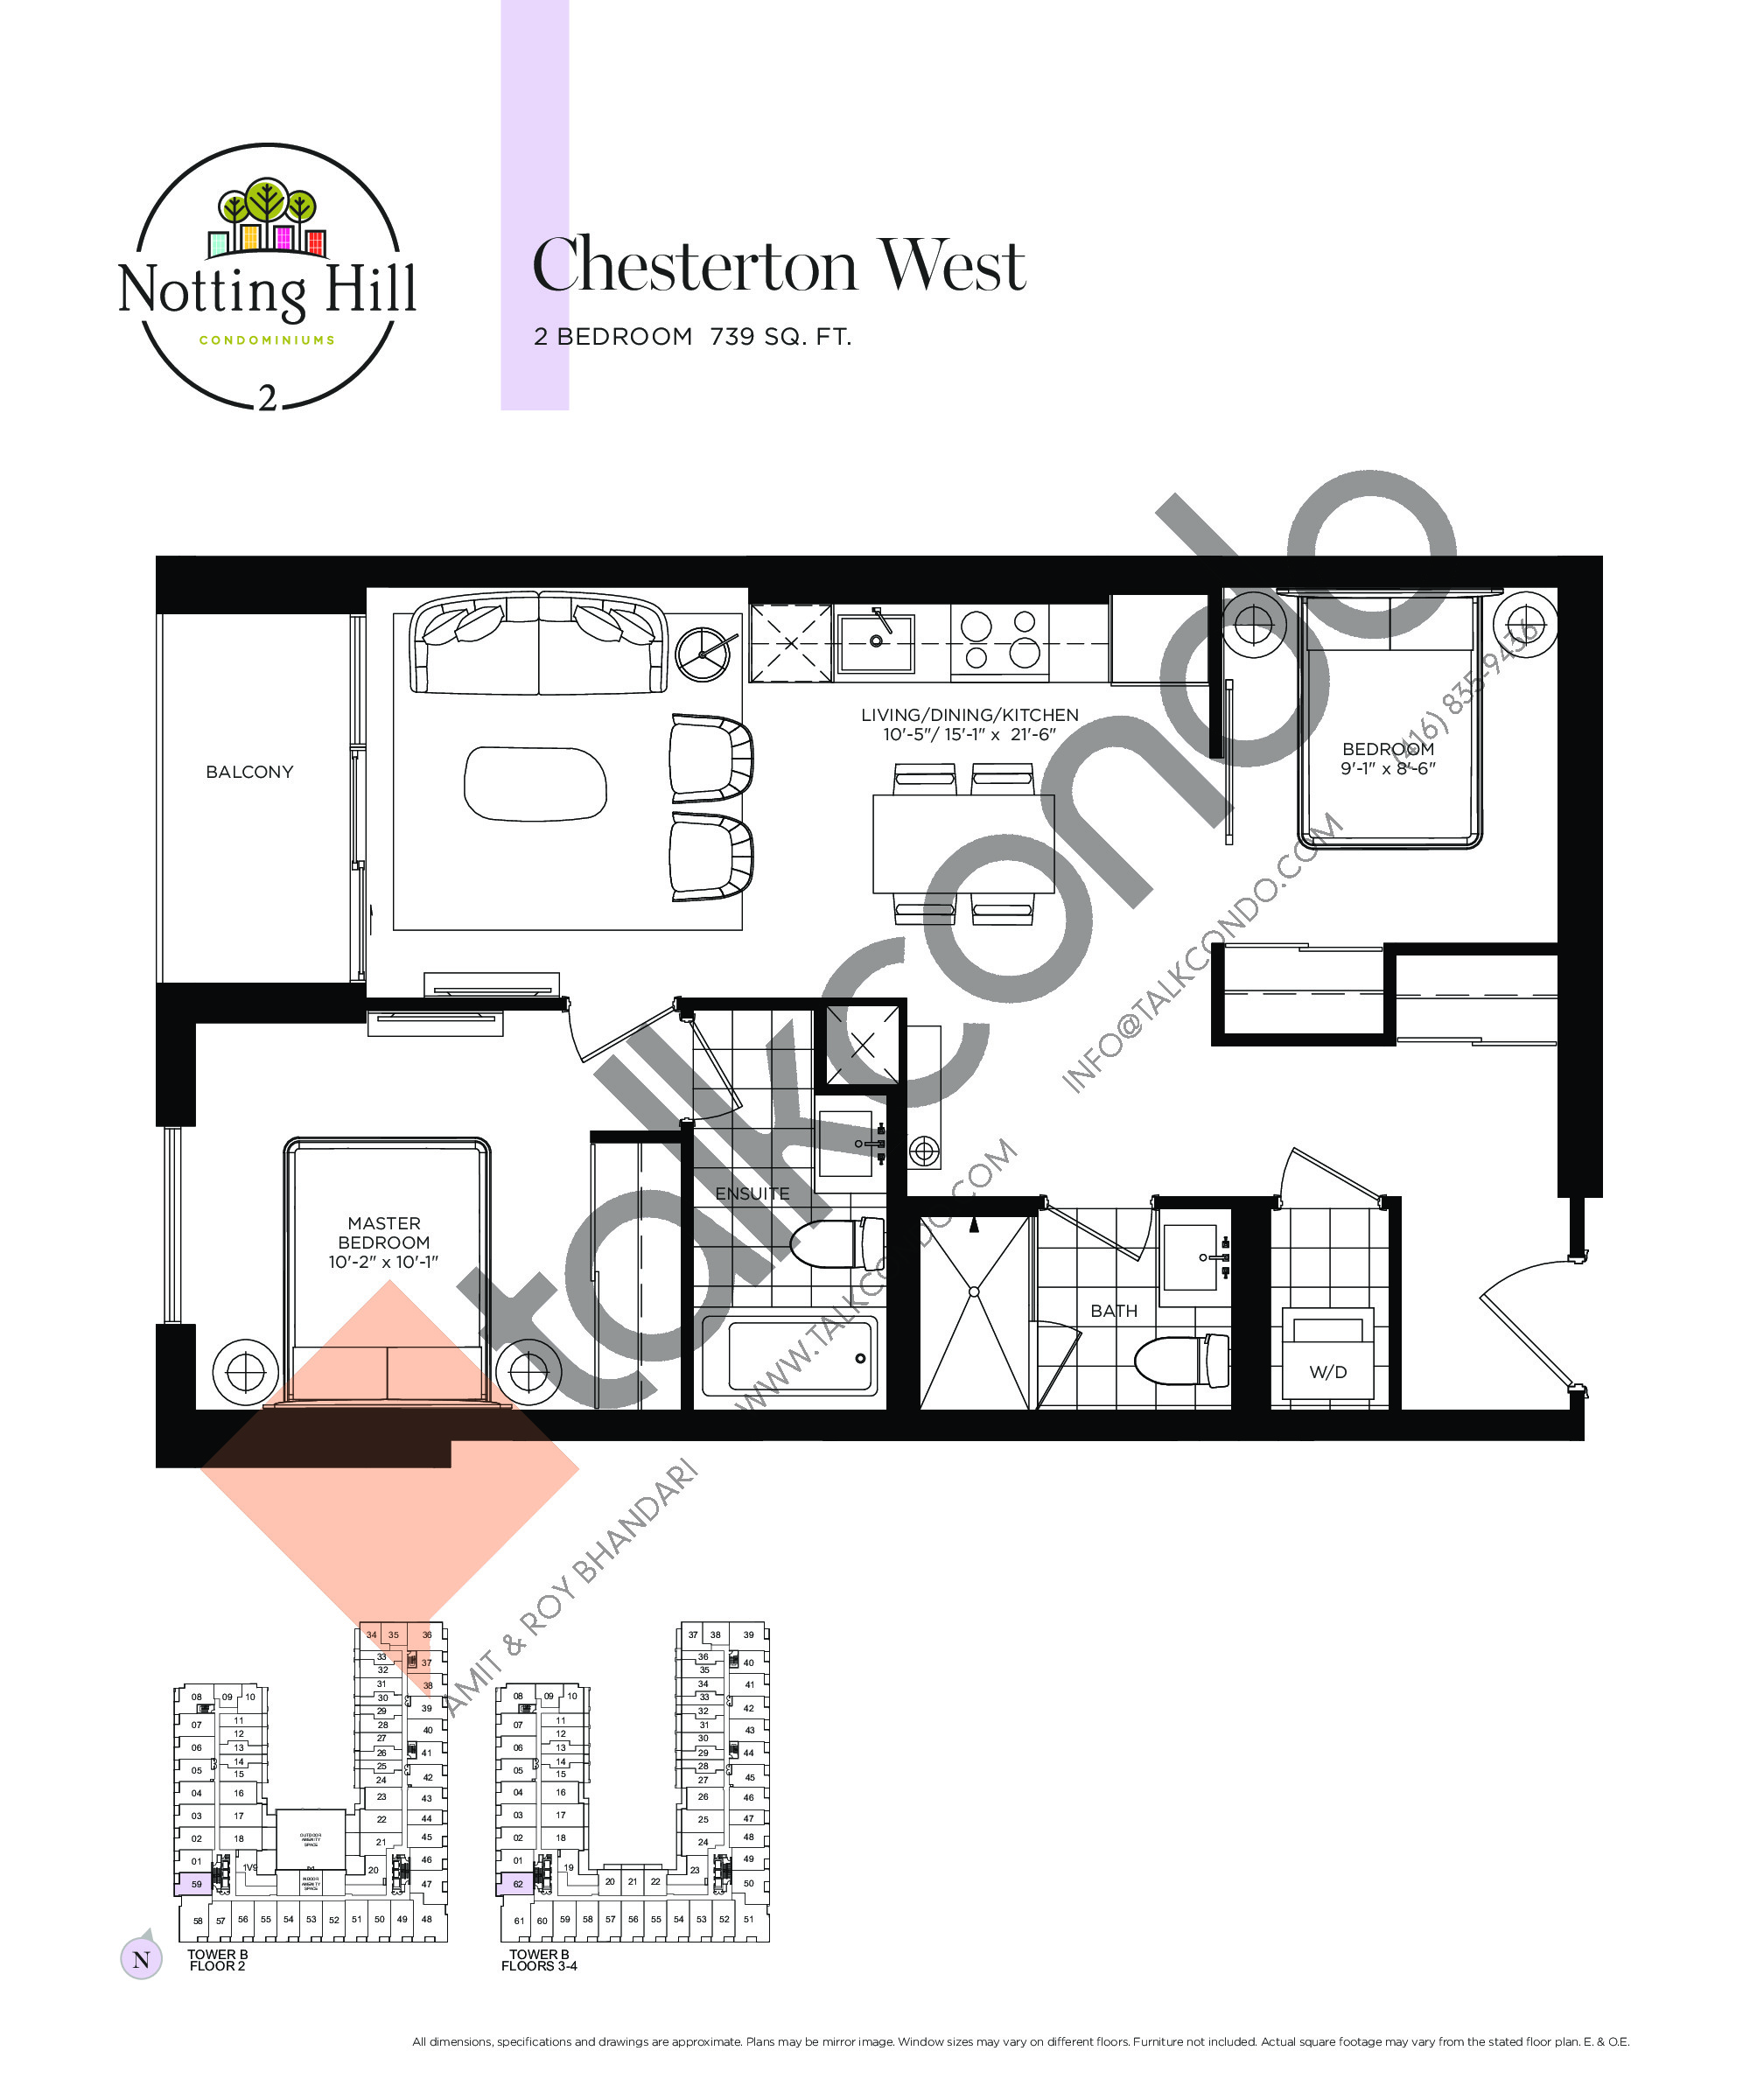 Chesterton West Floor Plan at Notting Hill Phase 3 Condos - 739 sq.ft